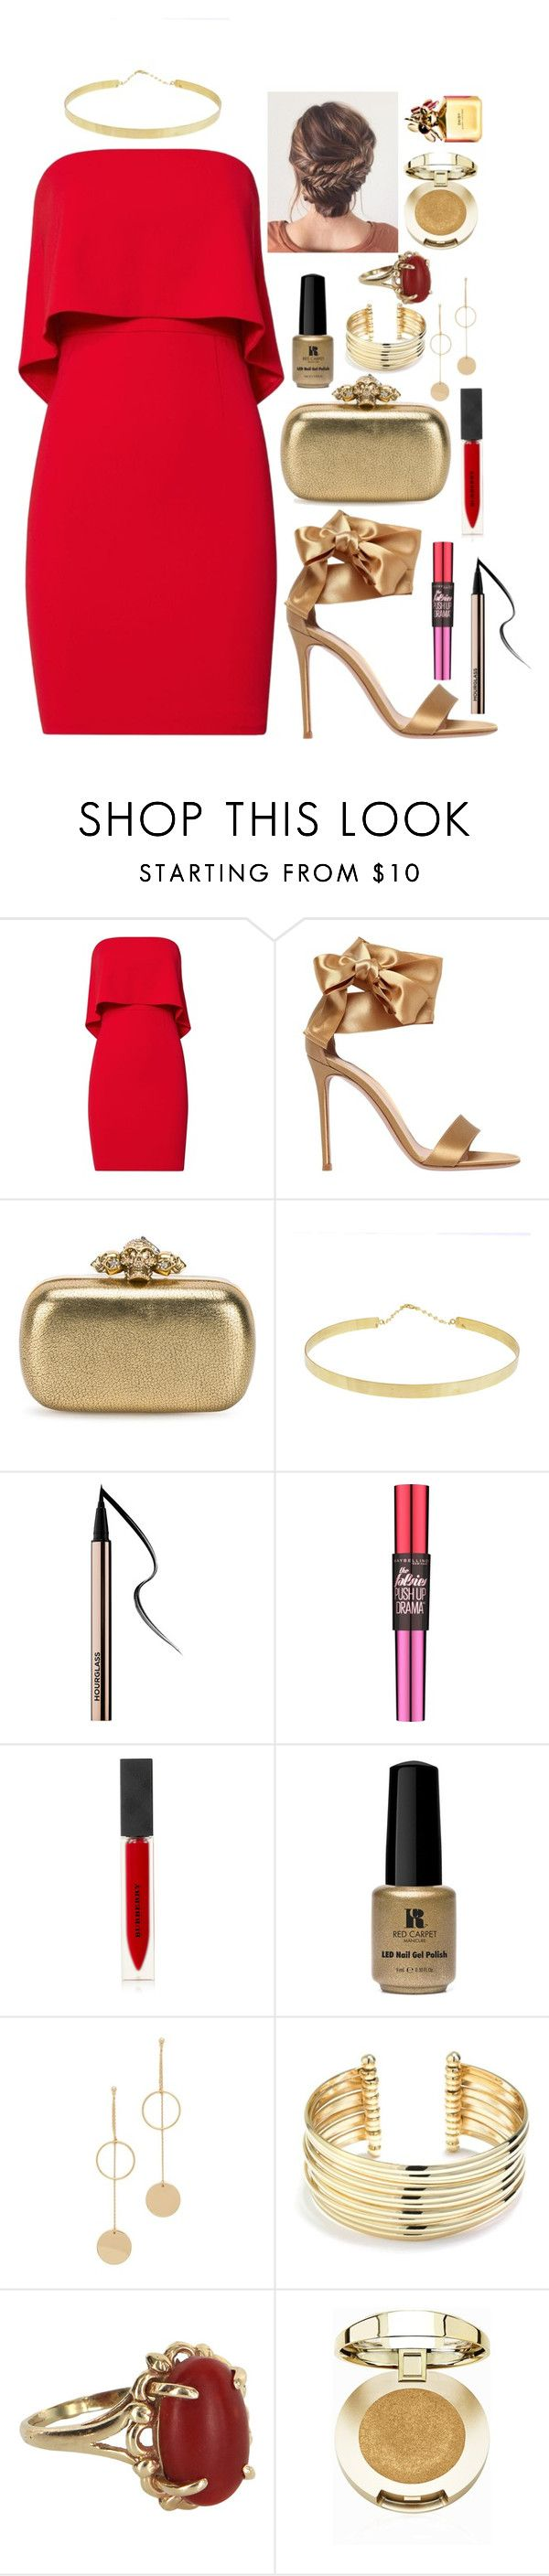 """Gryffindor Formal #6"" by xxmonnyxx ❤ liked on Polyvore featuring Jay Godfrey, Gianvito Rossi, Alexander McQueen, Lana, Maybelline, Burberry, Red Carpet Manicure, Cloverpost, Belk Silverworks and Vintage"